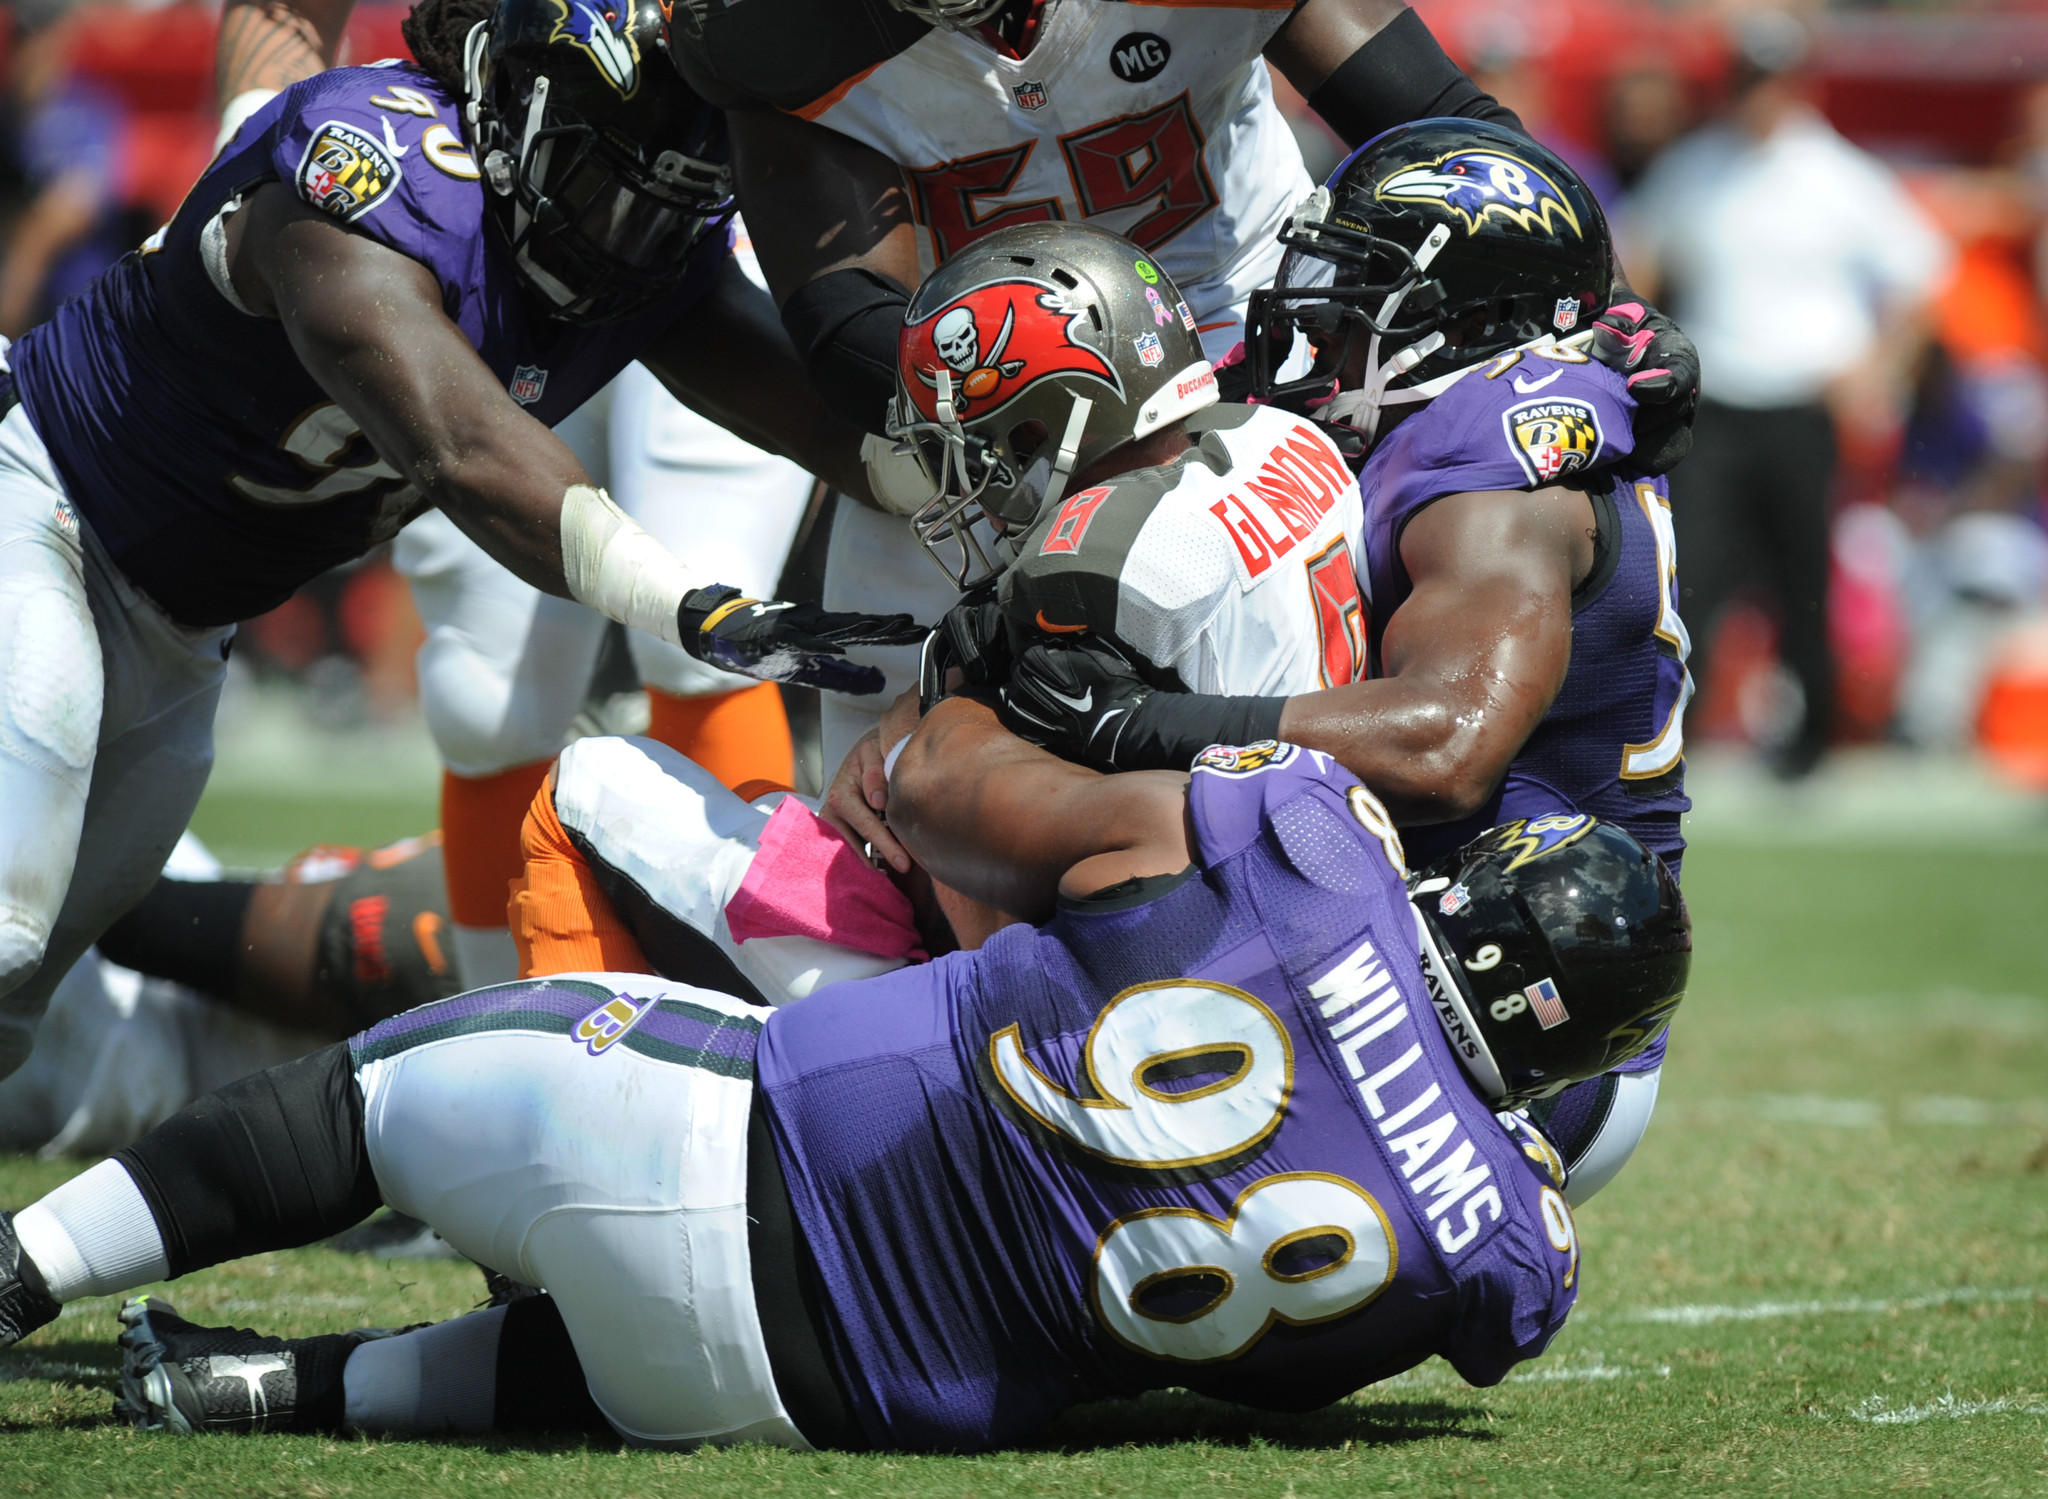 Tampa Bay Buccaneers Mike Glennon is sacked by Ravens linebacker Pernell McPhee, defensive end Brandon Williams and outside linebacker Elvis Dumervil.